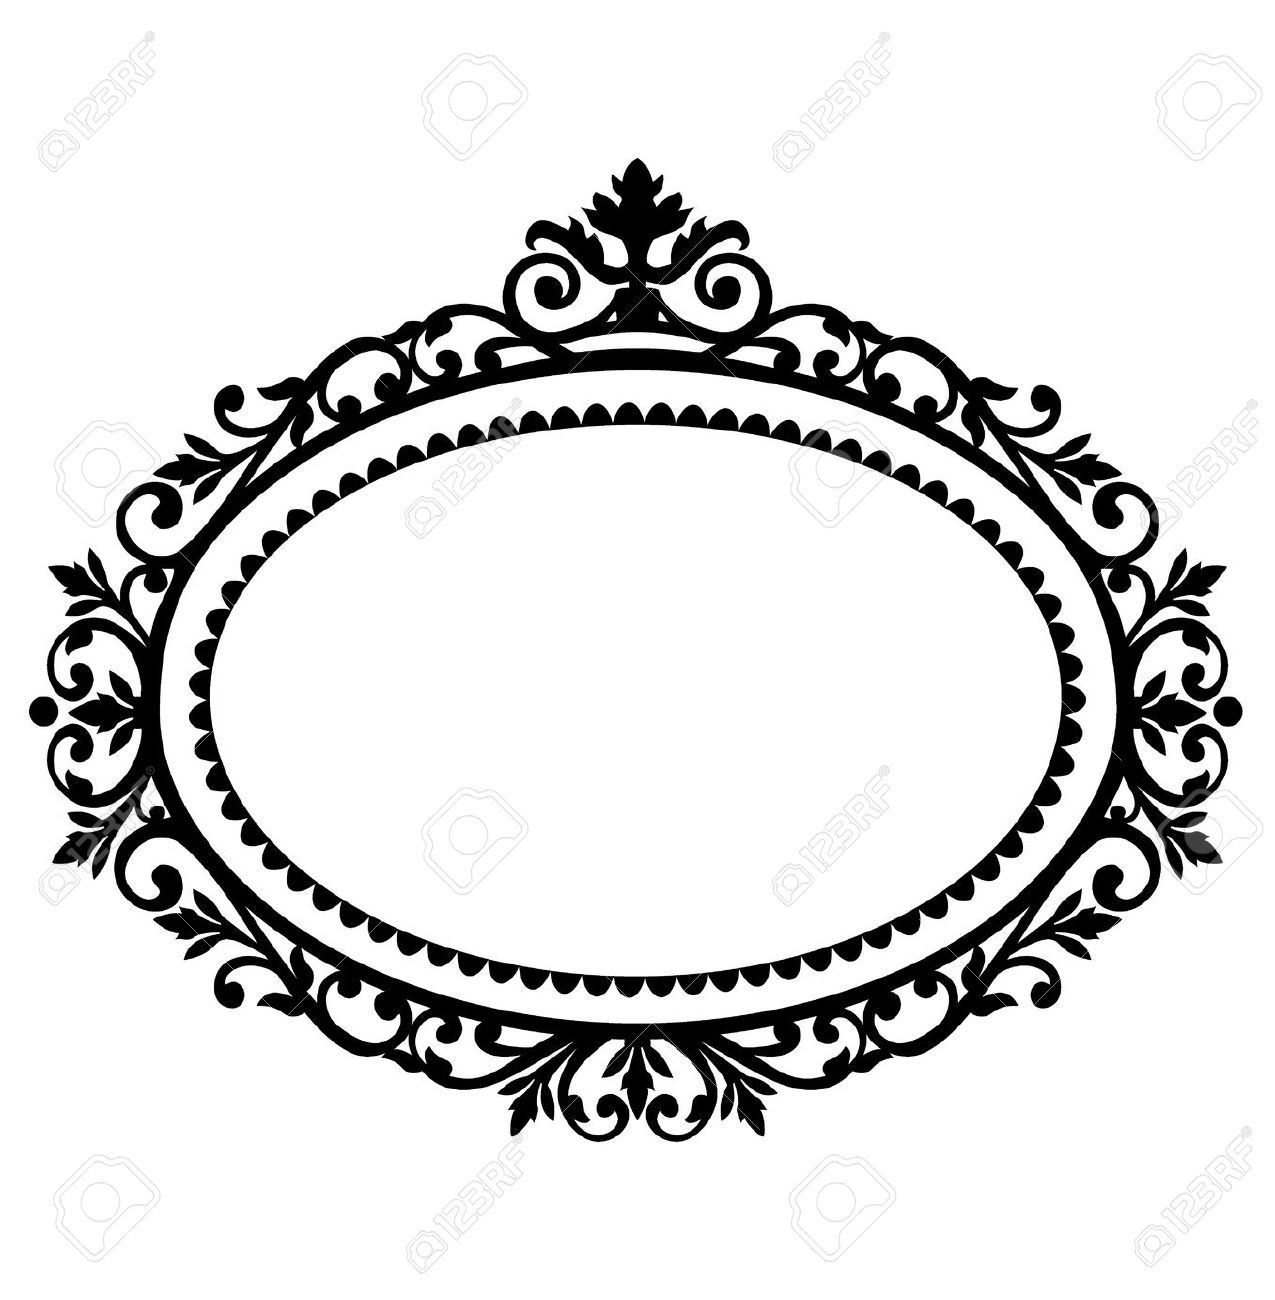 8087576-Decorative-frame-Stock-Vector-frame-vintage-oval.jpg (1275 ...